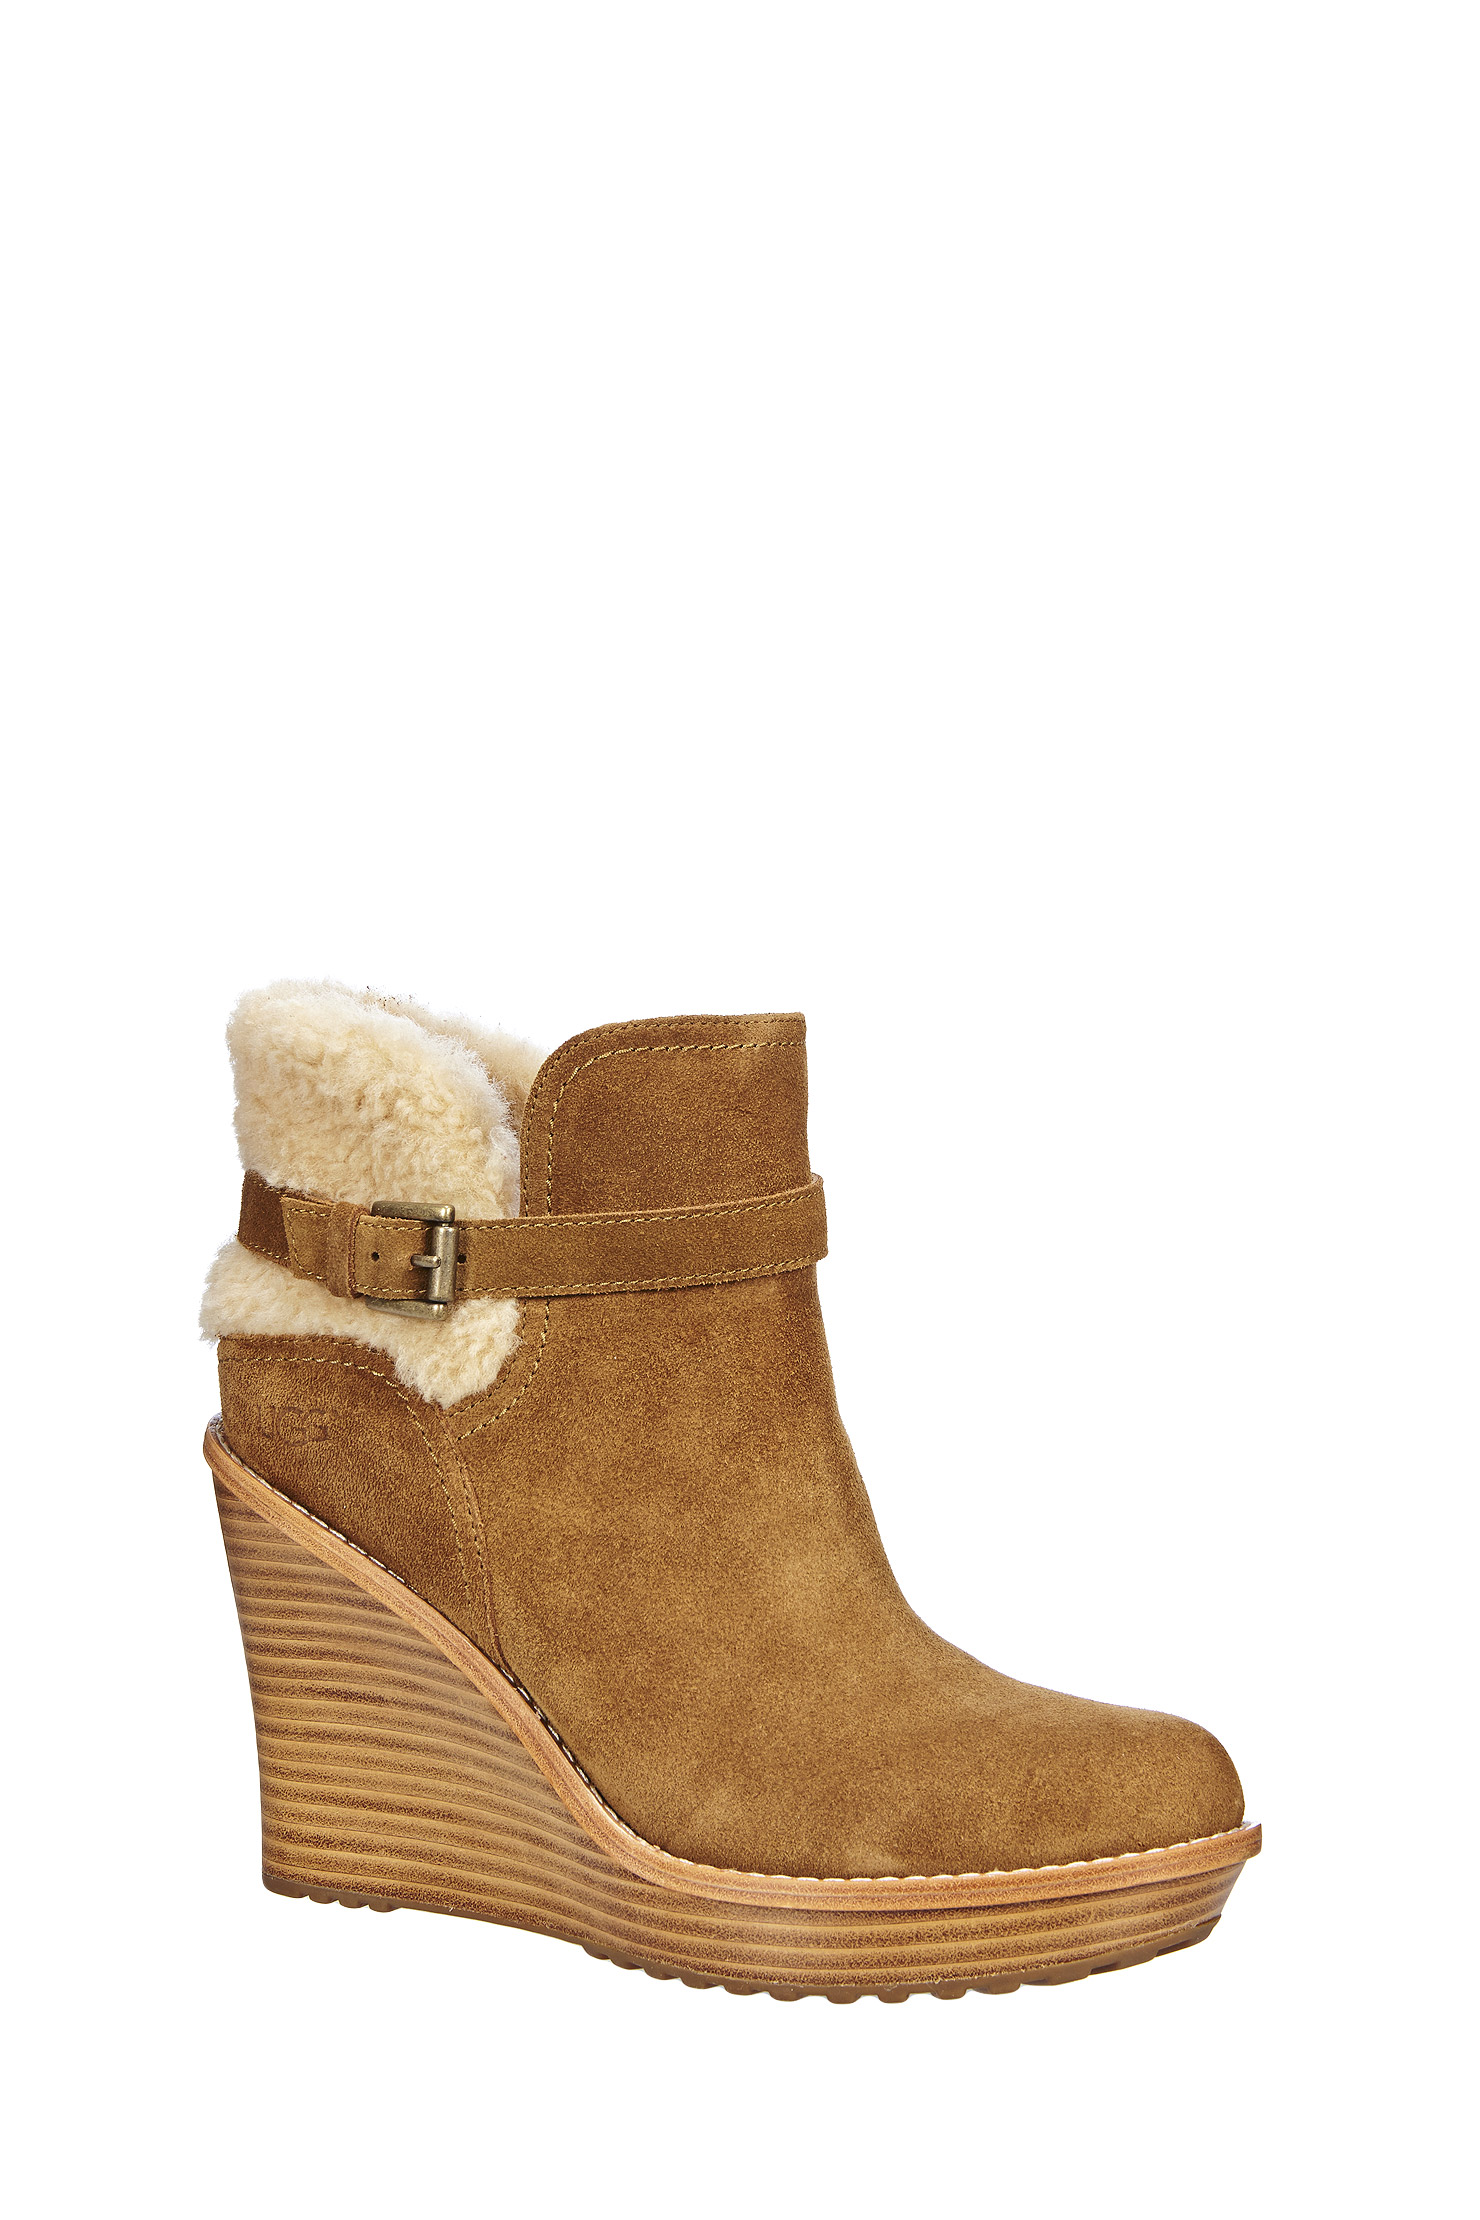 ugg boots w anais in brown lyst